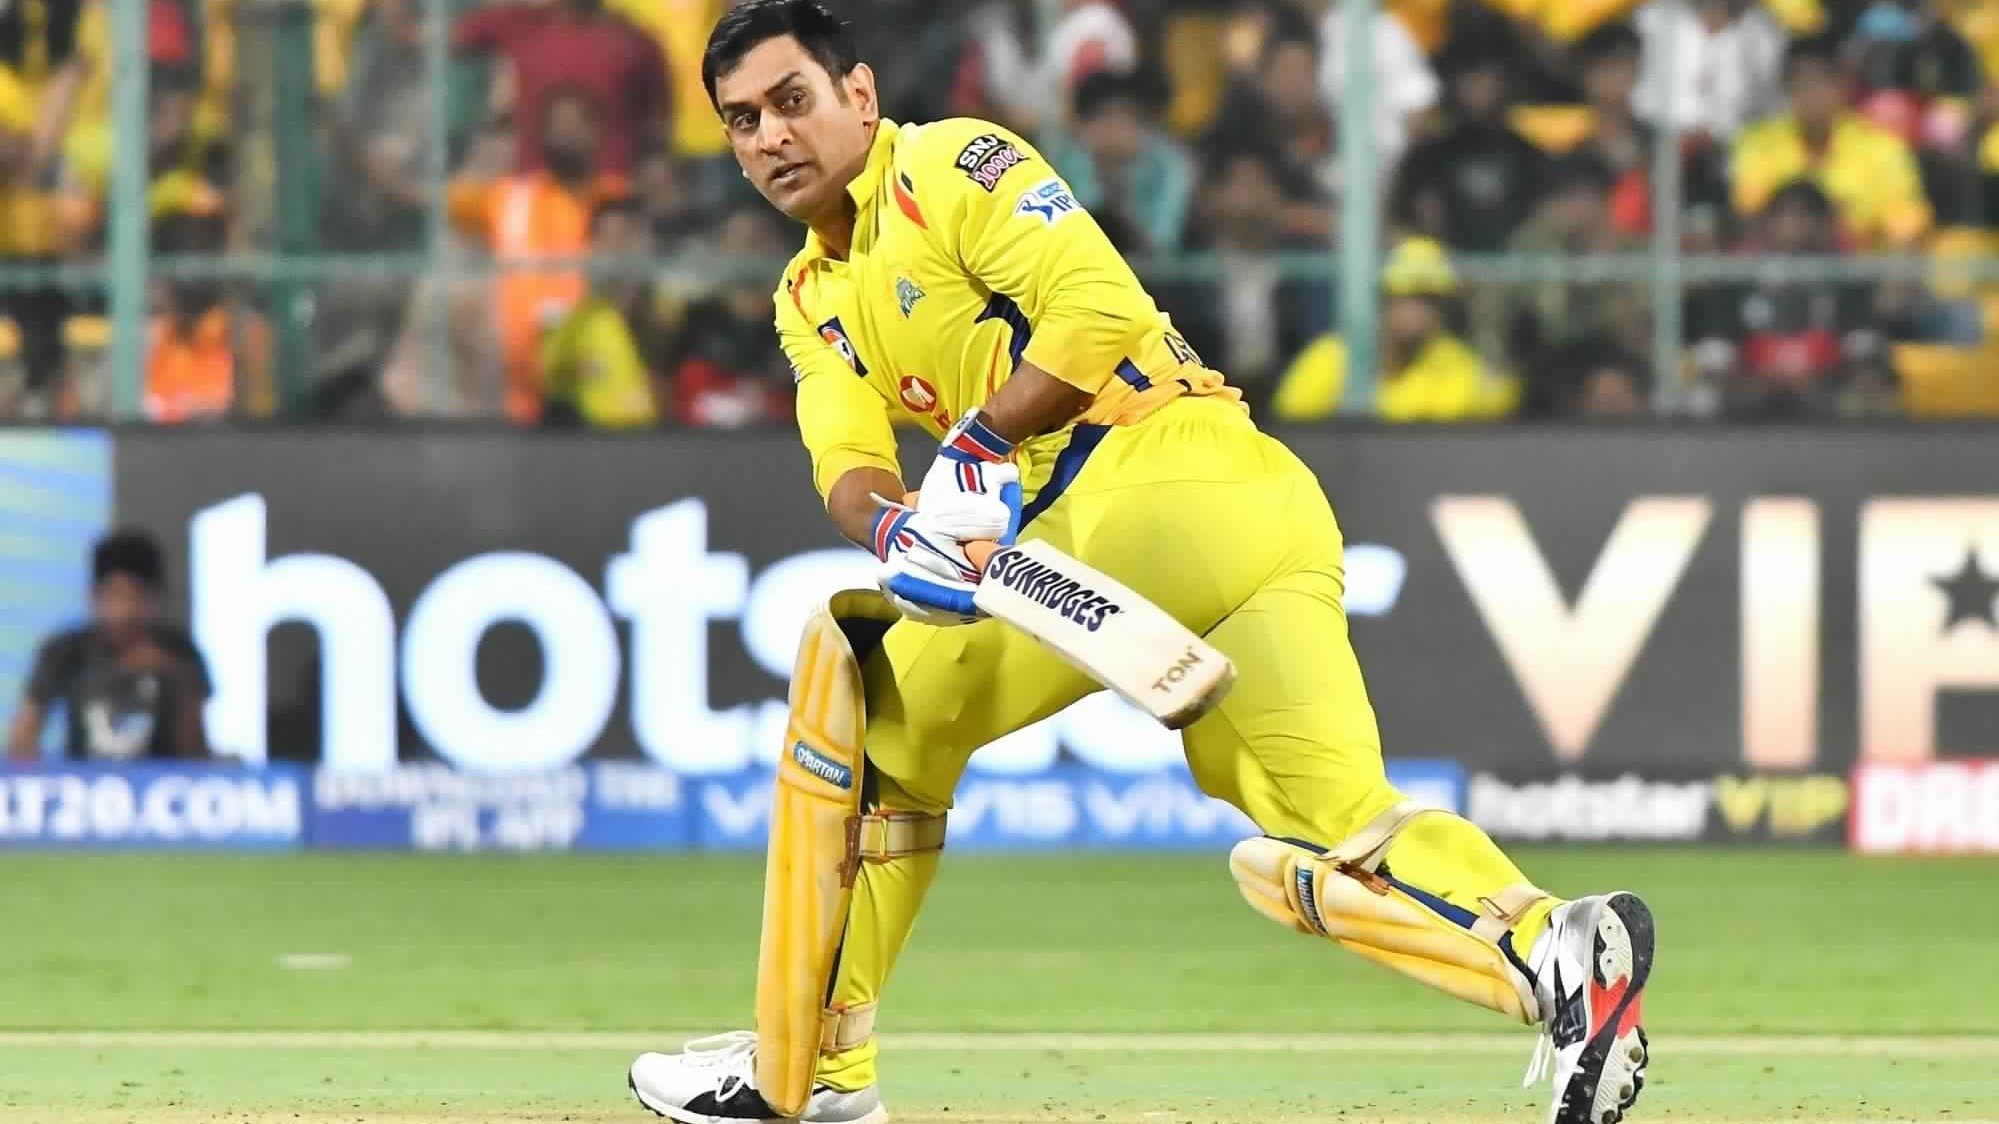 IPL 2019: Sad fans wish for MS Dhoni's recovery after he misses yet another encounter